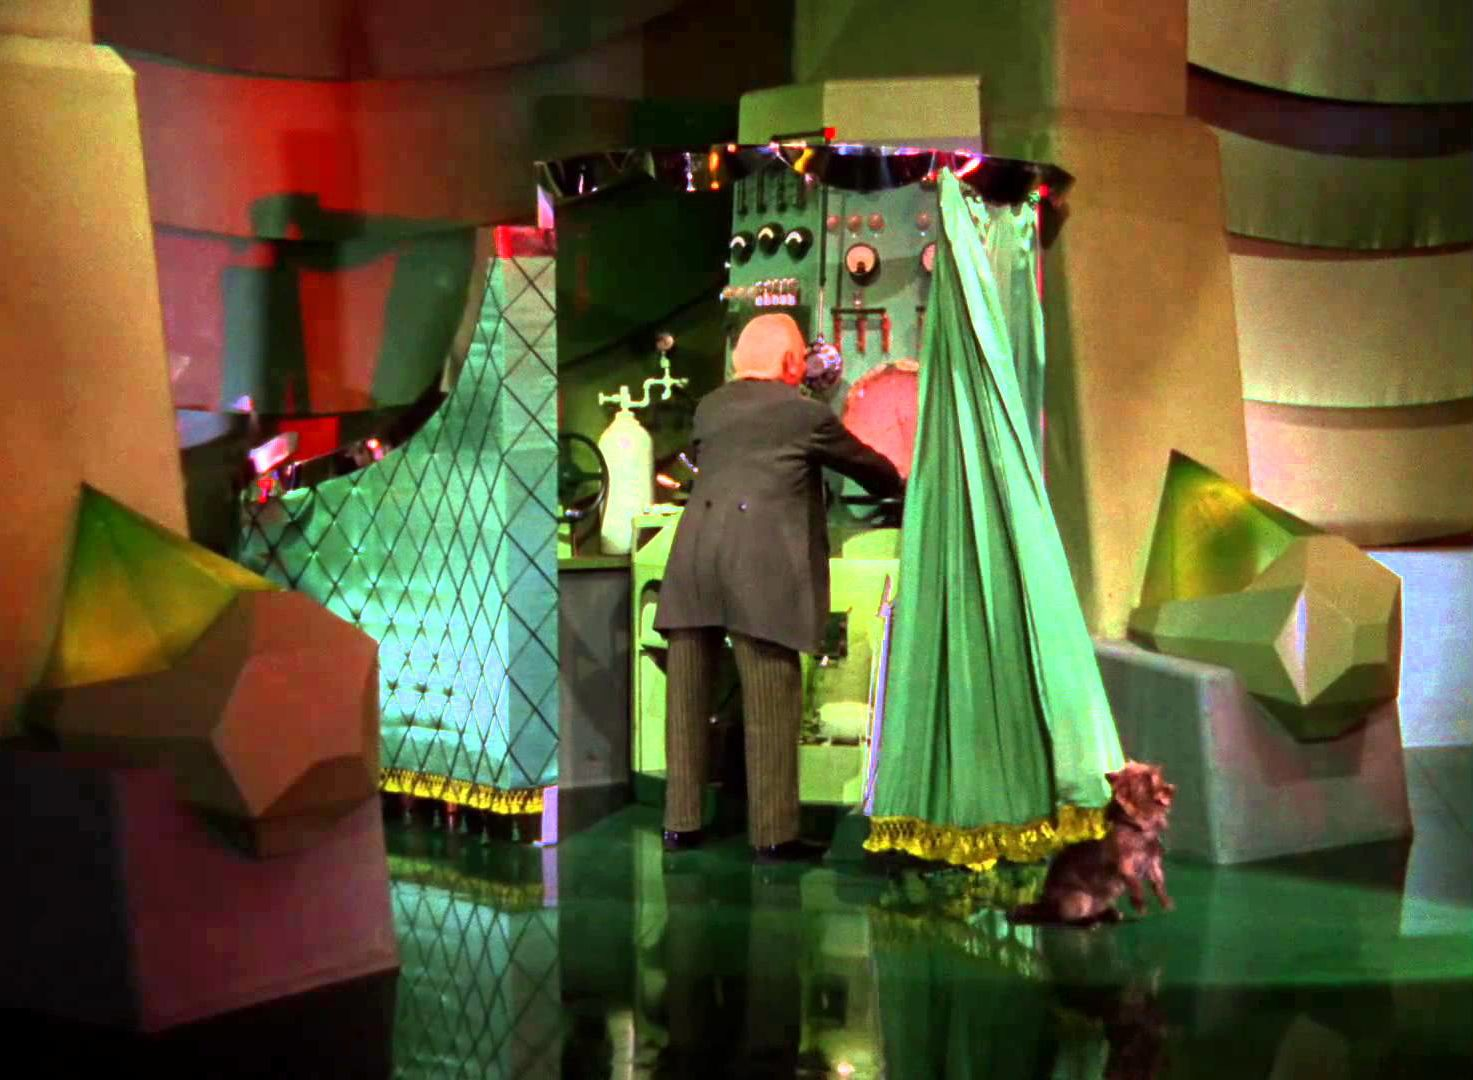 Think of your operations partners as the man behind the curtain